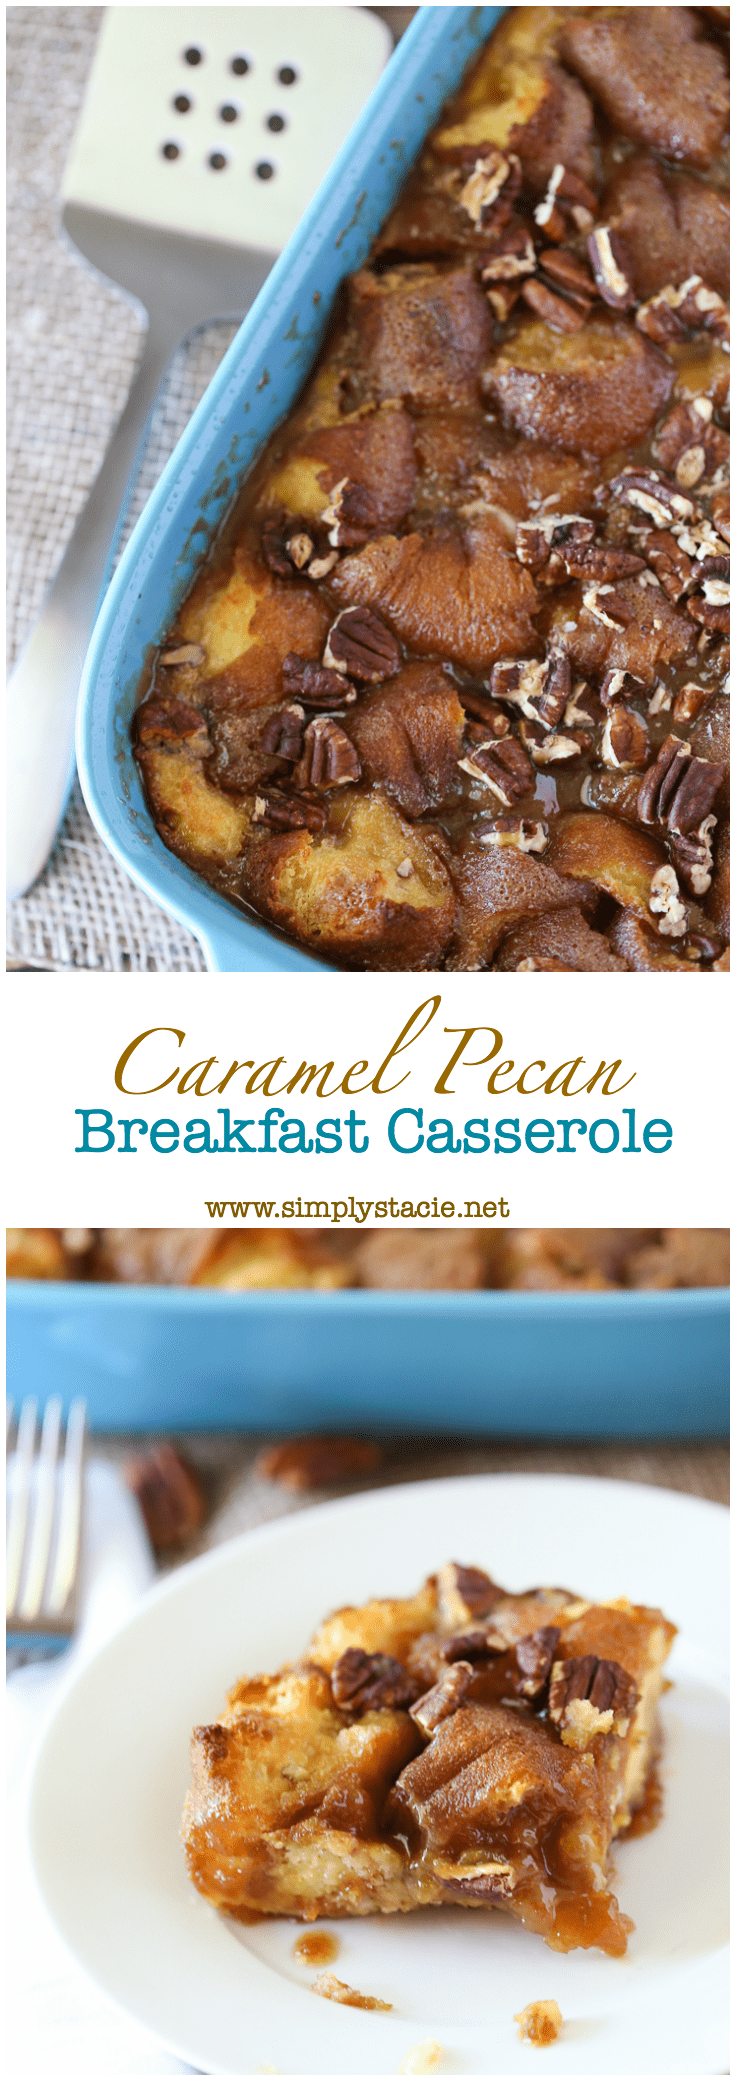 Caramel Pecan Breakfast Casserole - Indulge your sweet tooth with this simple and decadent recipe.